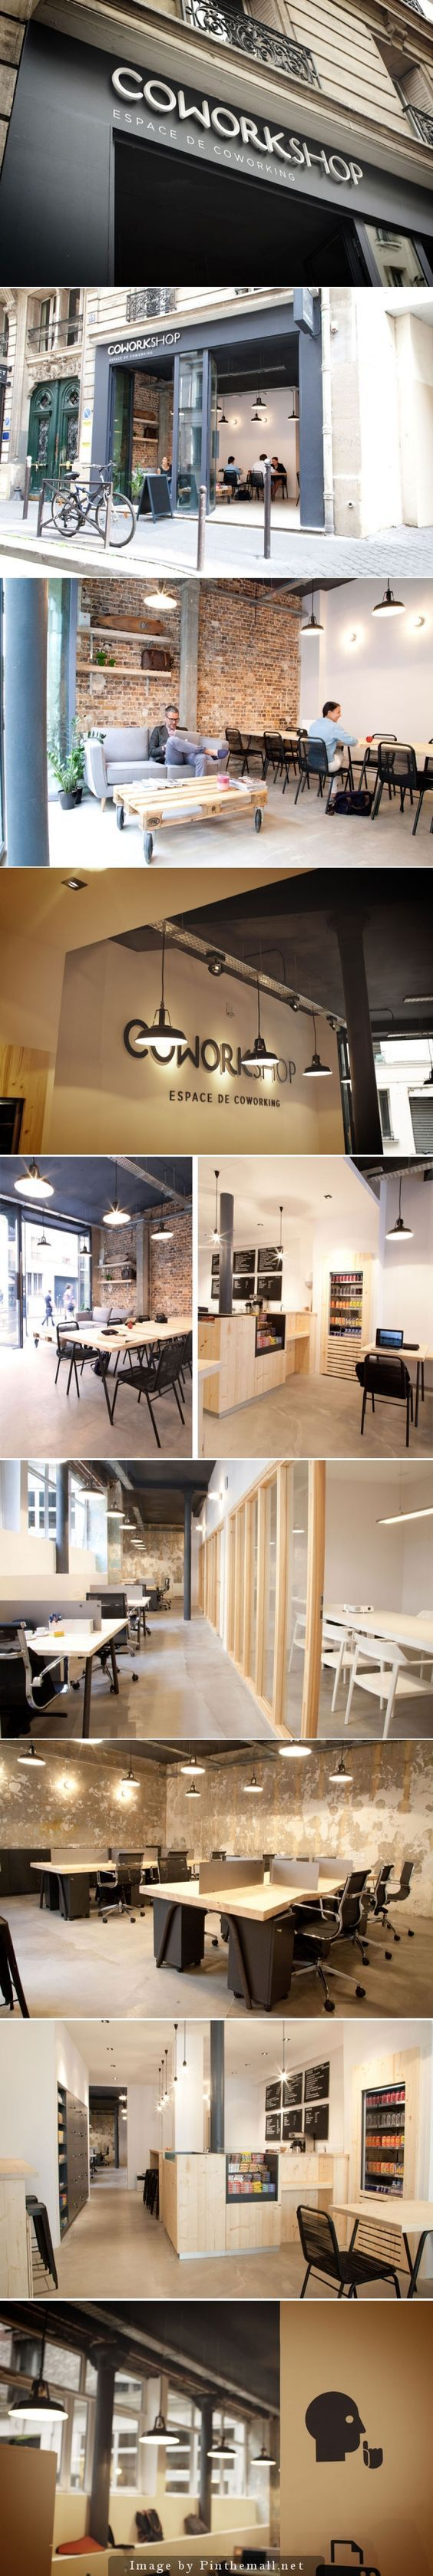 COWORKSHOP co-working space in Paris. Superb.:                                                                                                                                                                                 More